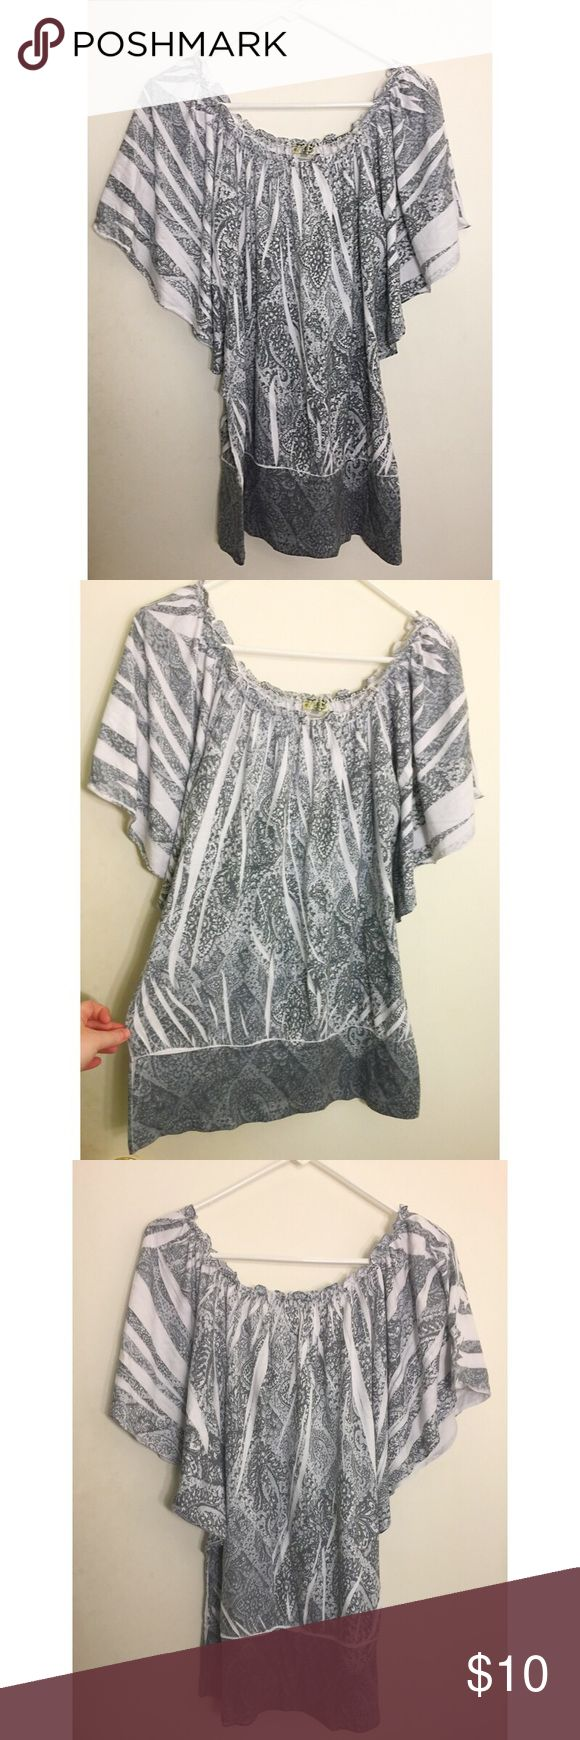 🎀 Grey & White Batwing Top 🎀 EUC • worn only twice • flowy batwing top with tapered bottom • size M, also fits L and XL Tops Blouses